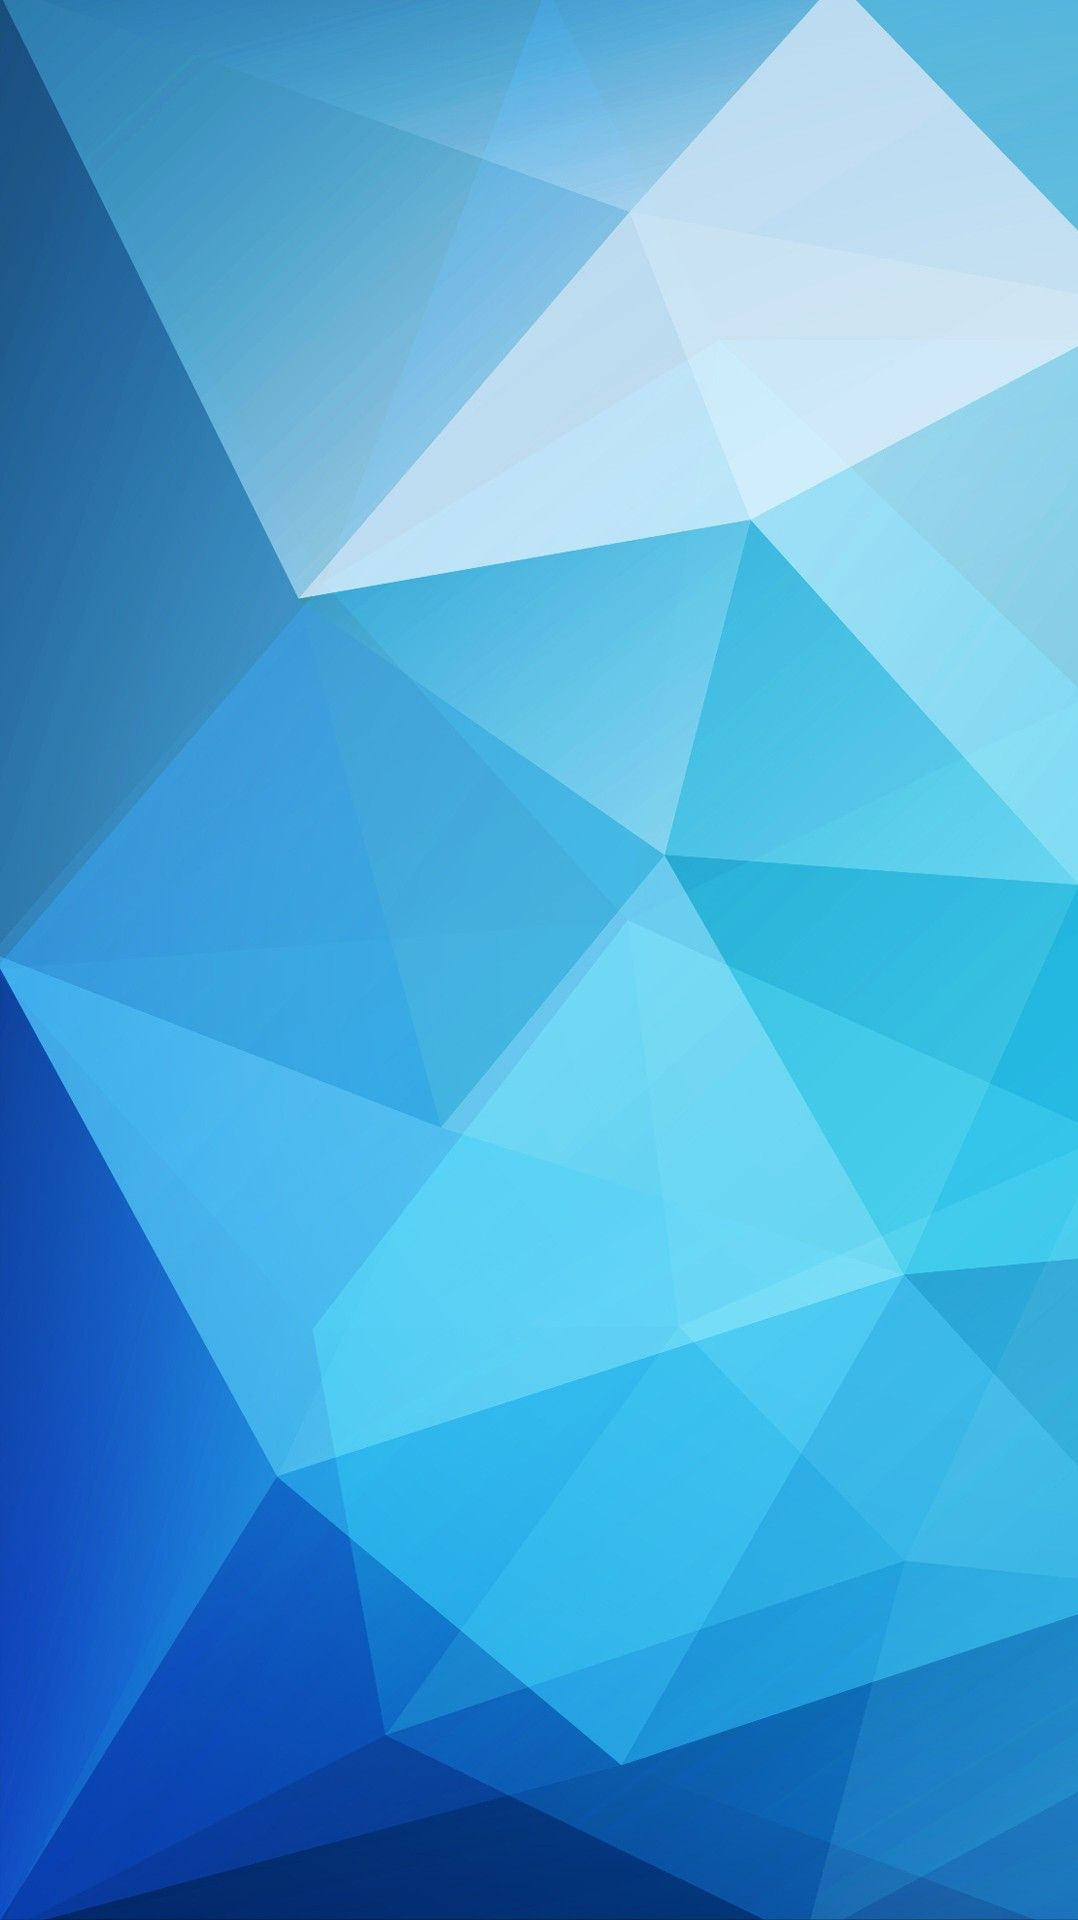 Blue-Low-Poly-Wallpaper-iPhone-Wallpaper from iphoneswallpapers.com